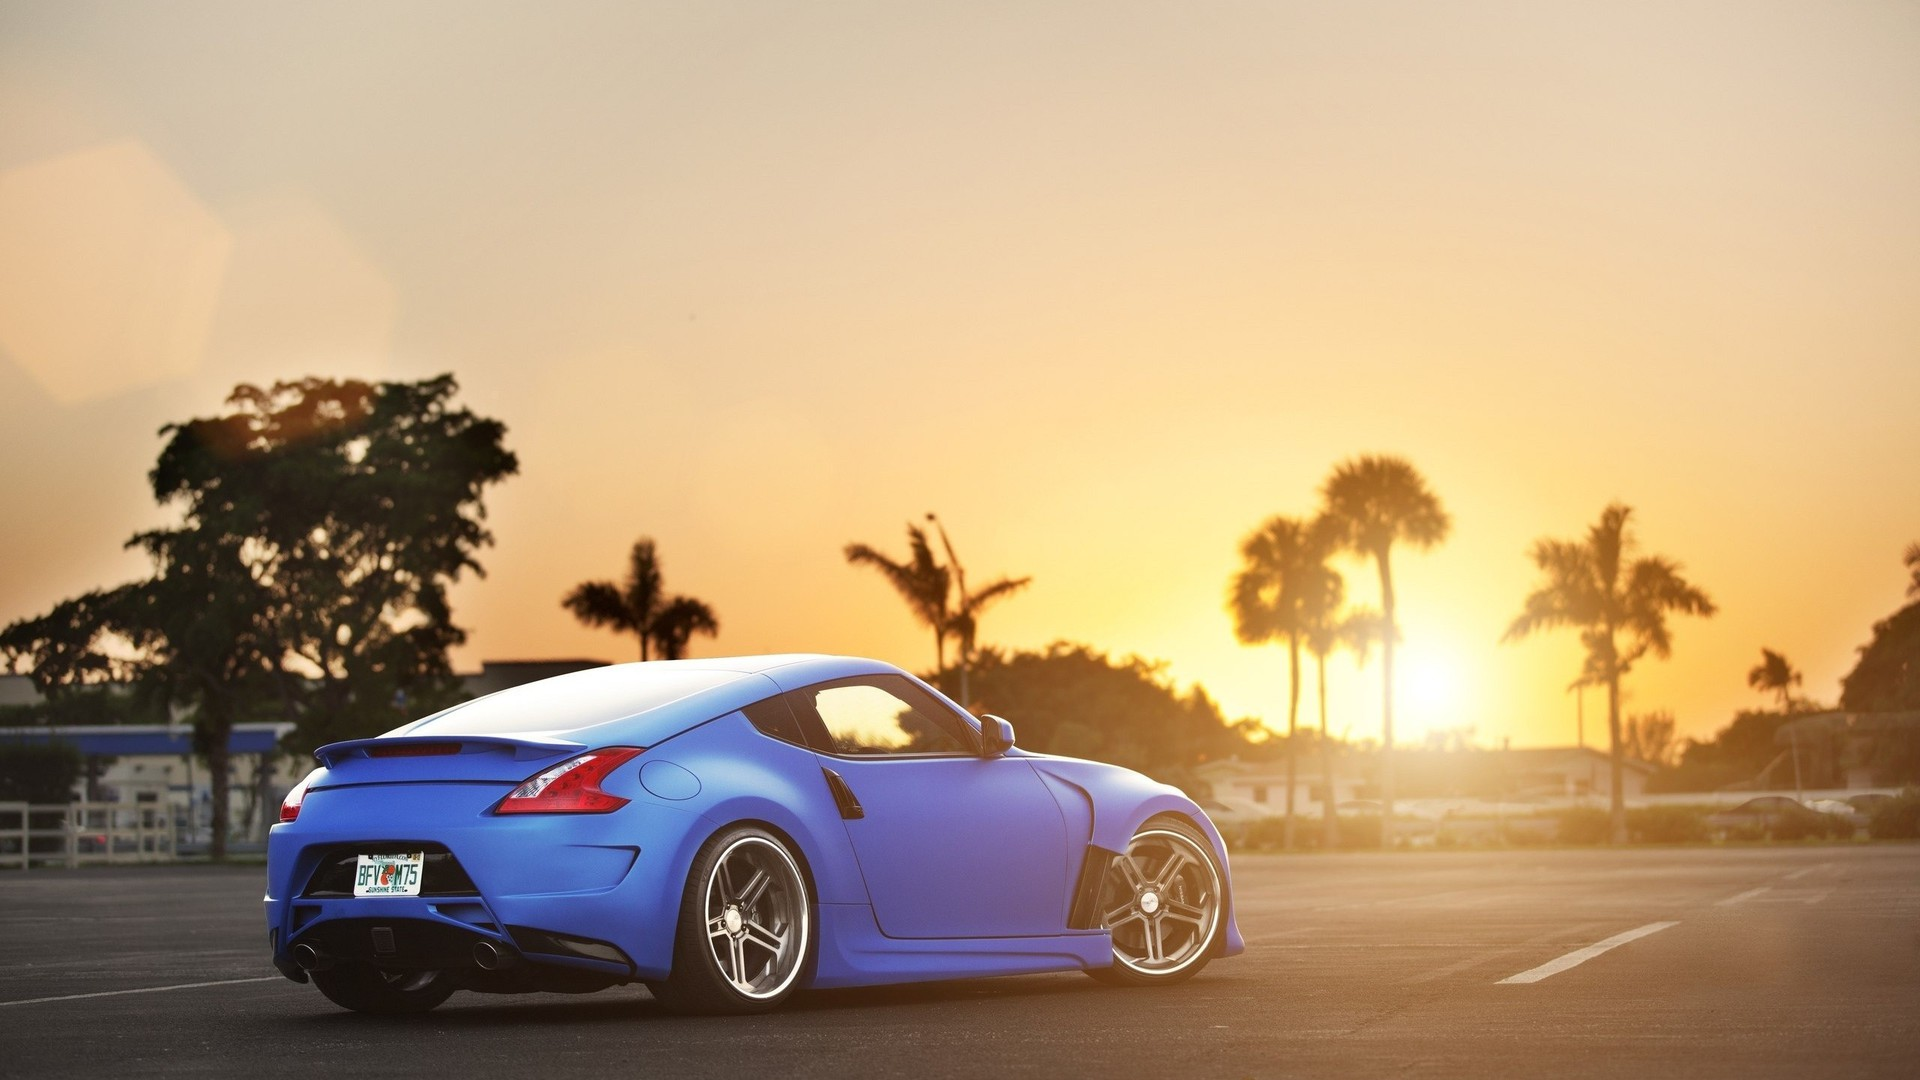 Nissan Fairlady Z >> Sunset blue nissan 370z wallpaper | AllWallpaper.in #16490 | PC | en